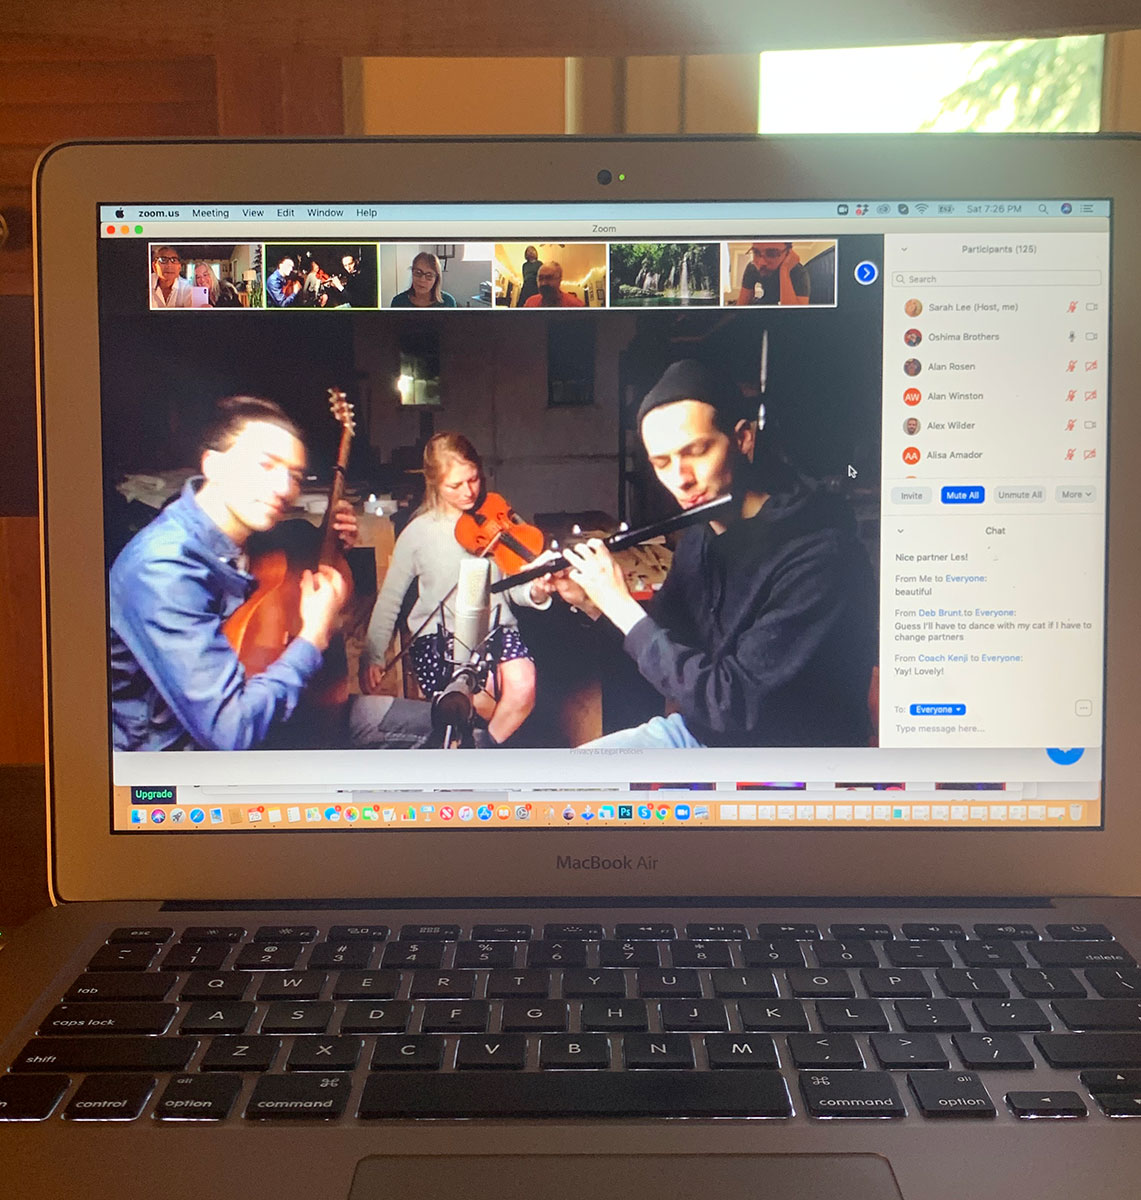 Online waltz party with live musicians